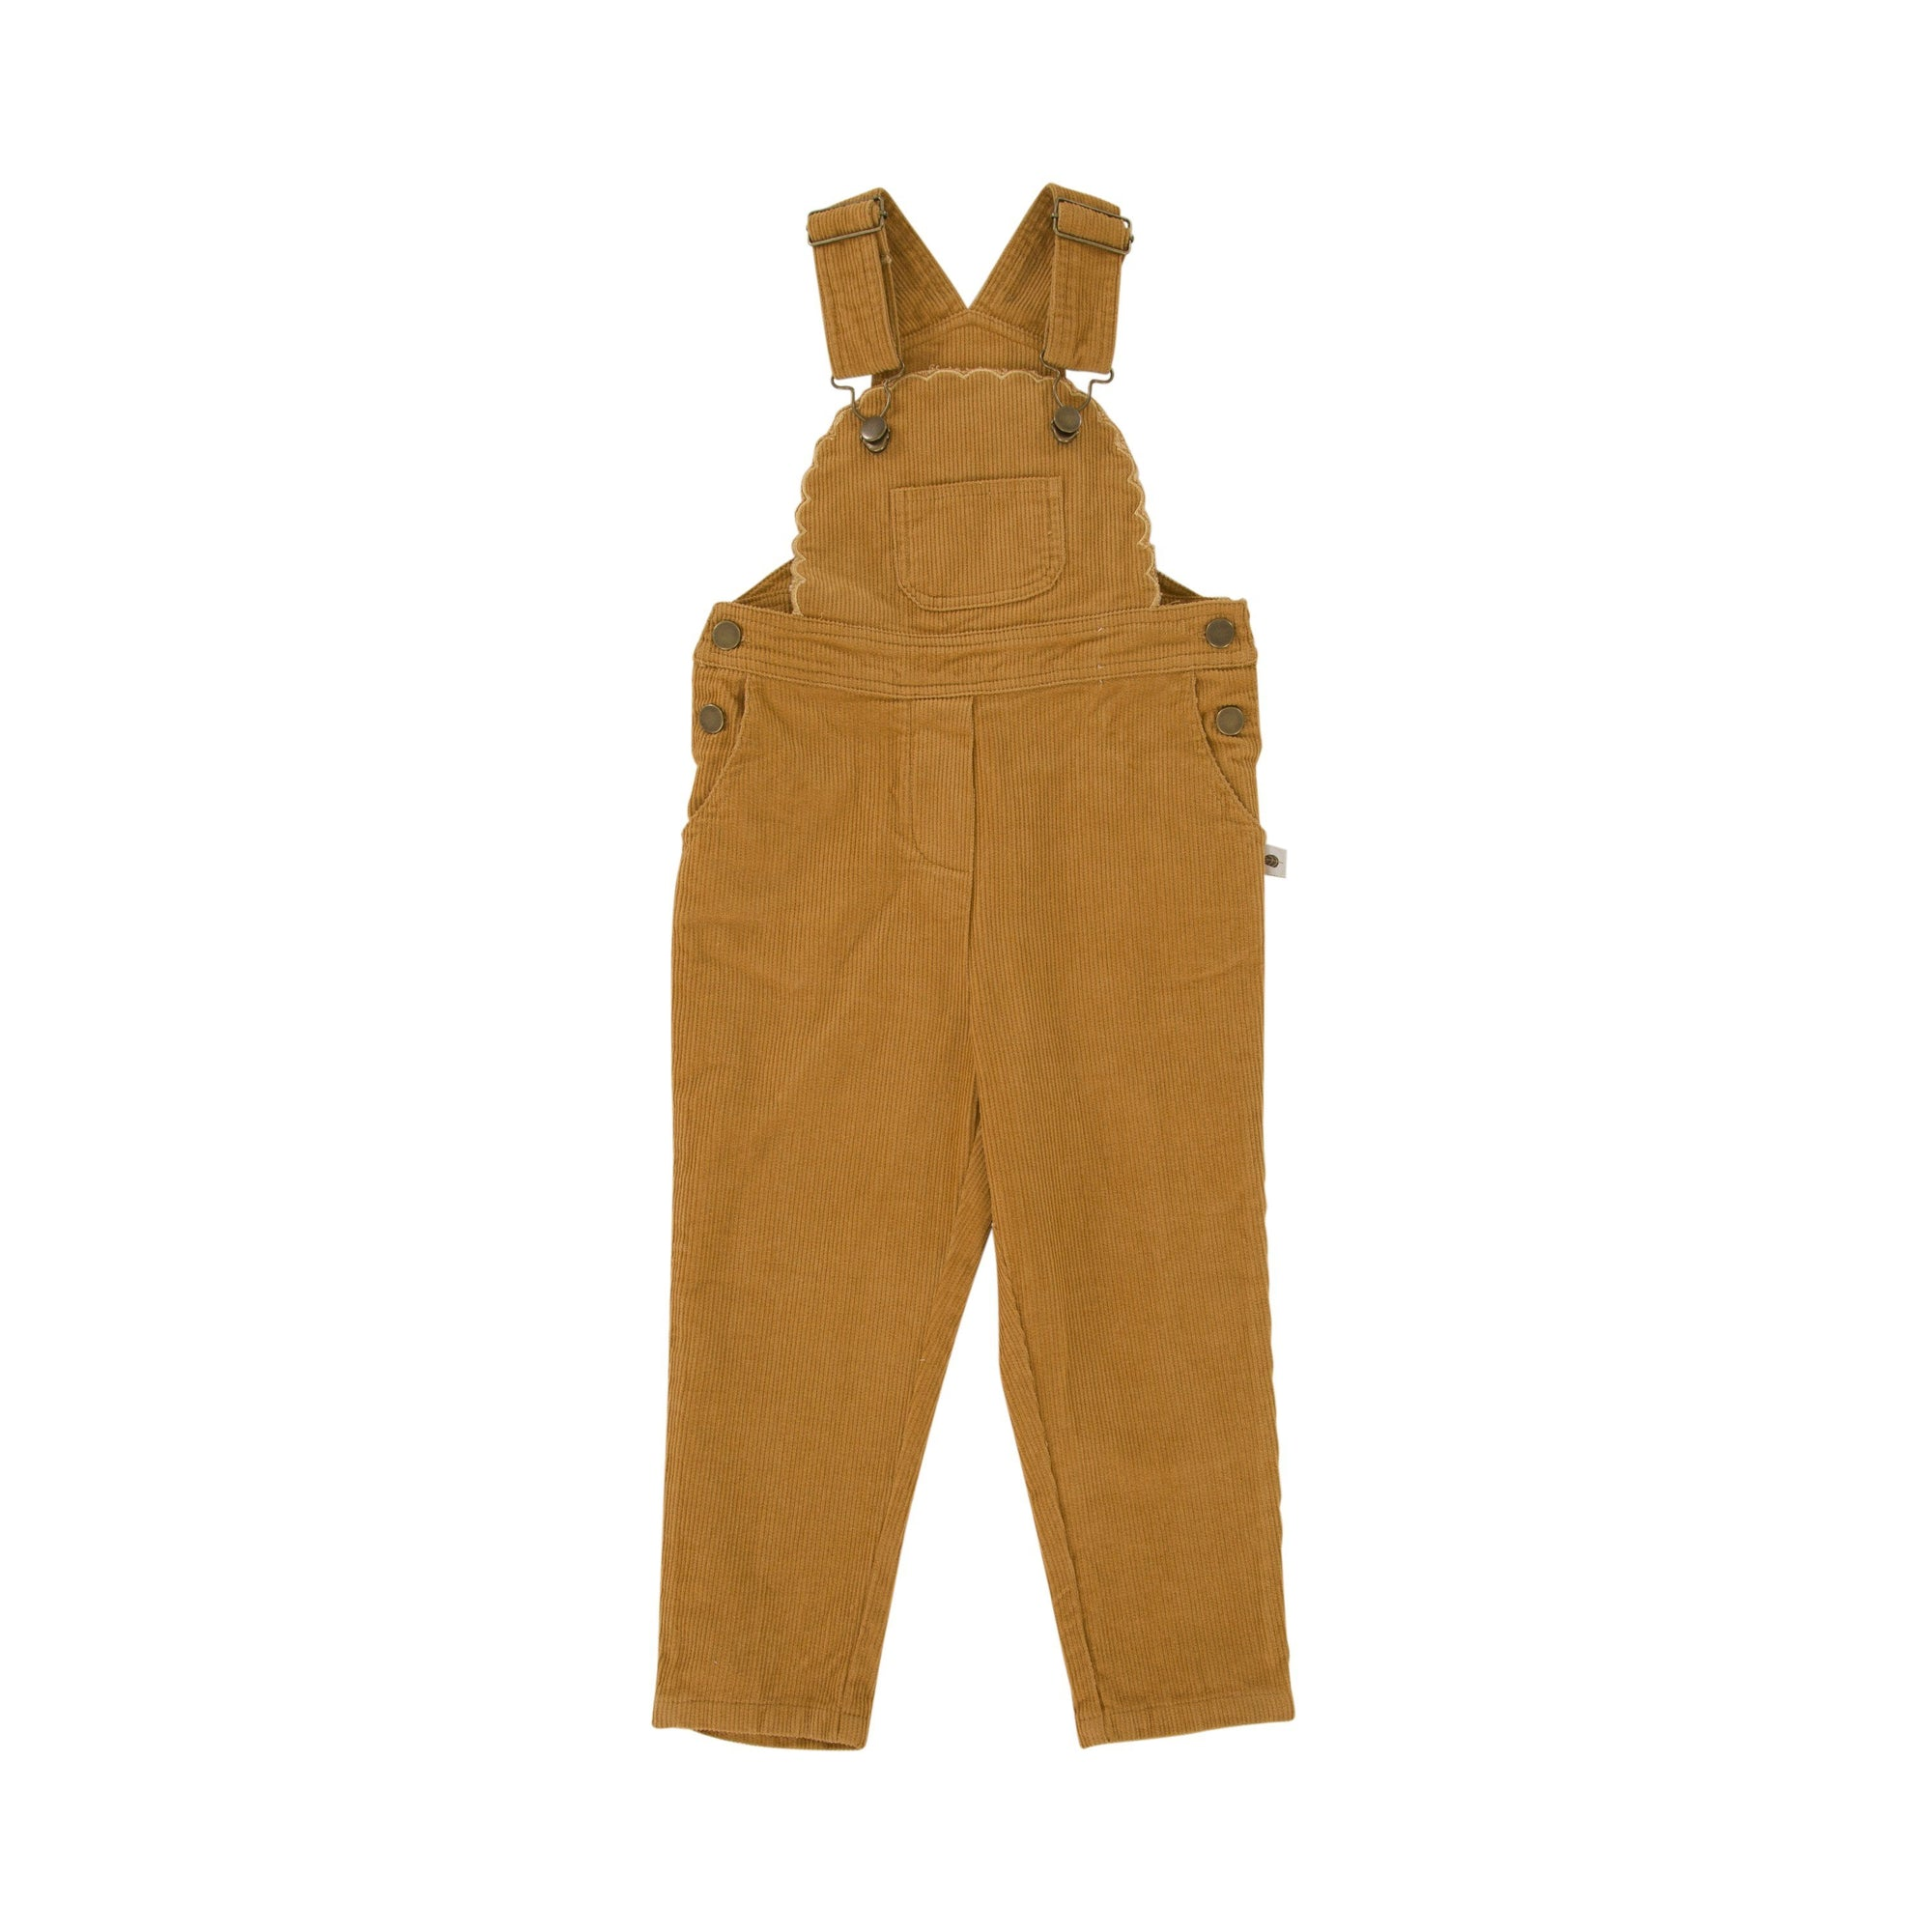 Cleo Overalls (Mustard Gold)